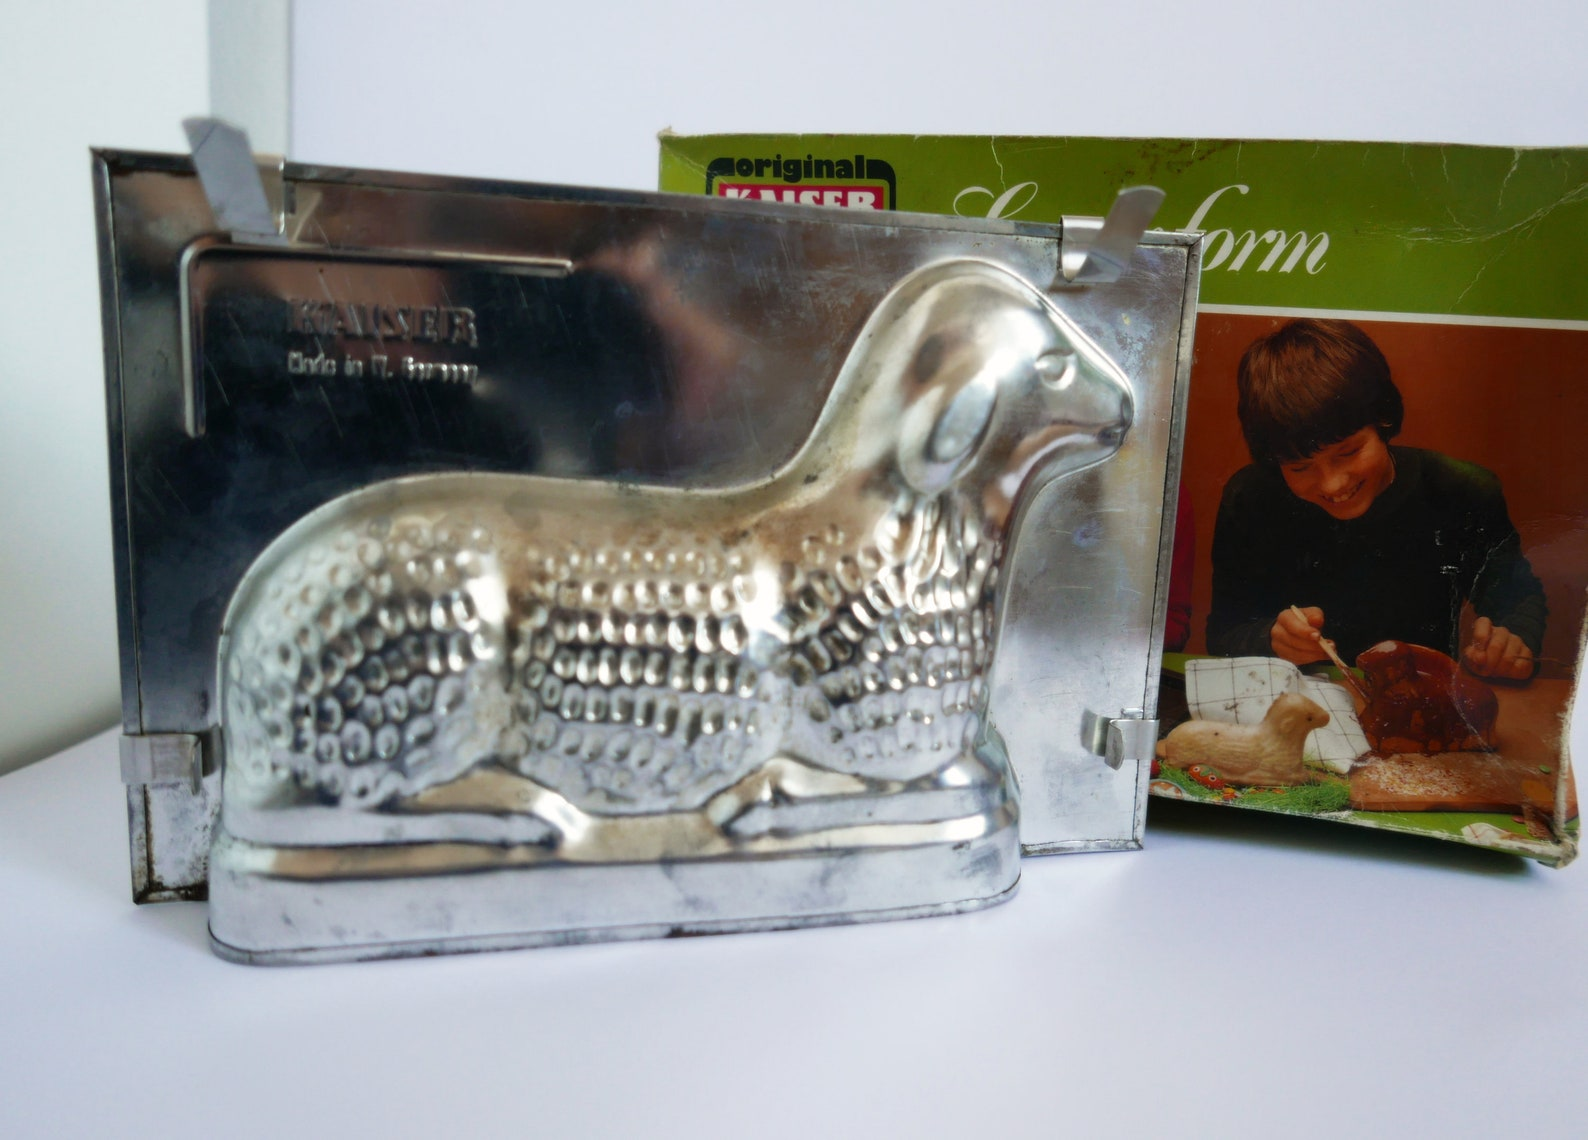 Vintage German lamb cake mold for Easter baking with recipe, Kaiser mold